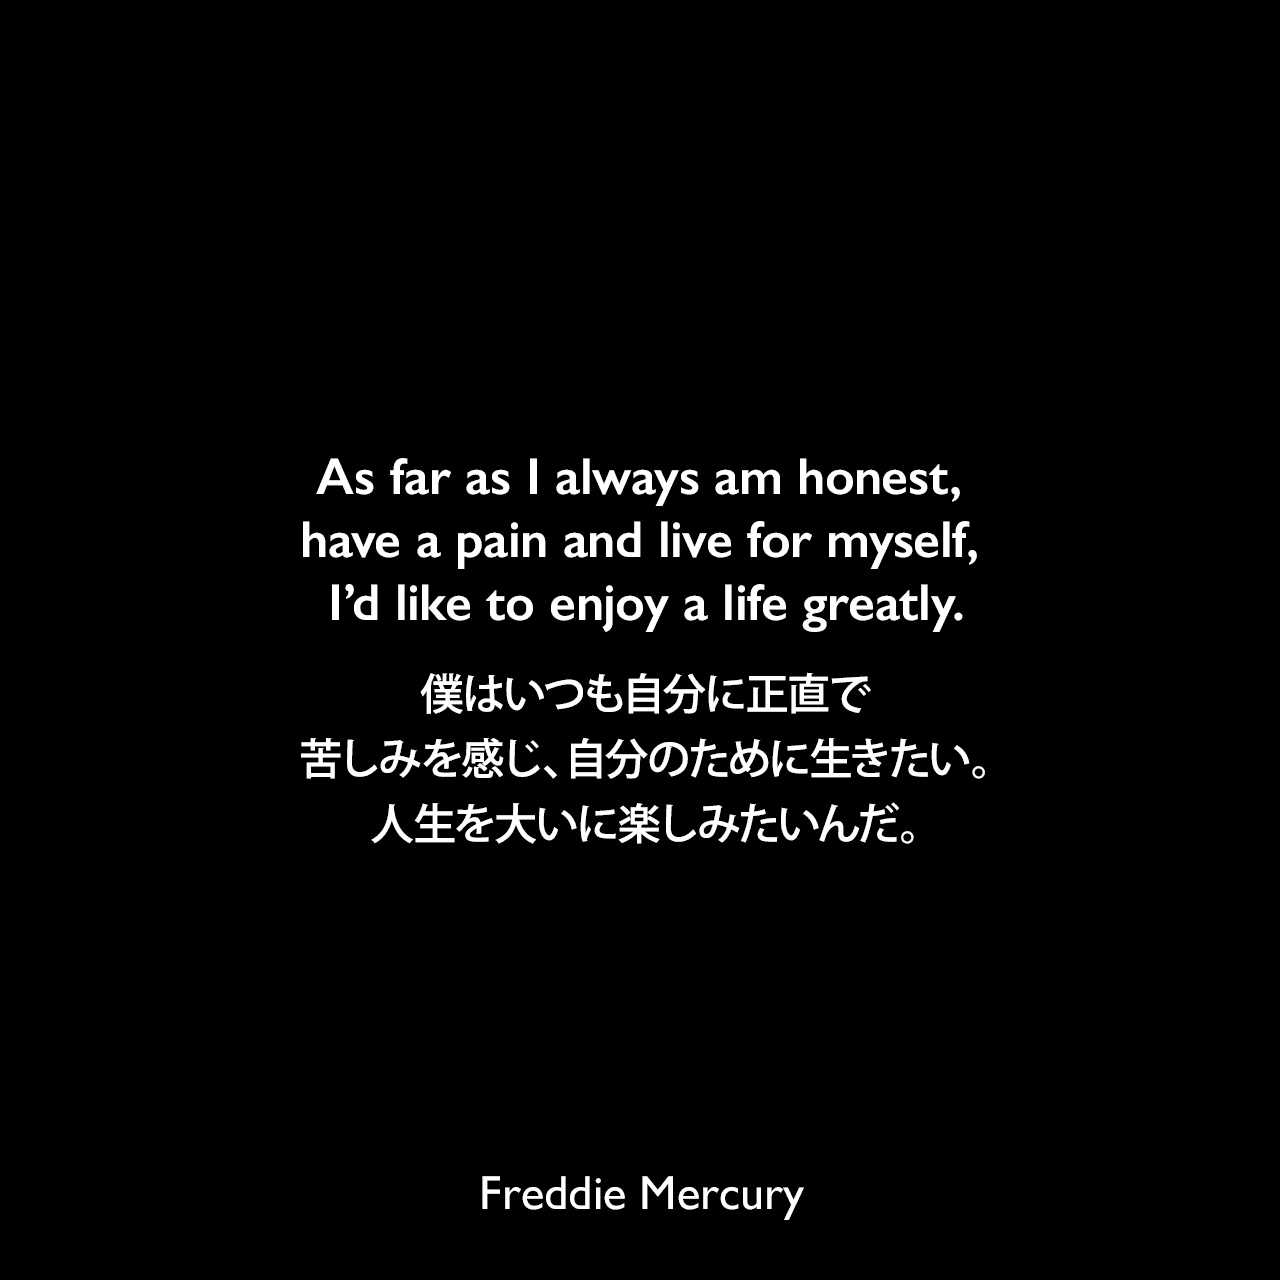 As far as I always am honest, have a pain and live for myself, I'd like to enjoy a life greatly.僕はいつも自分に正直で、苦しみを感じ、自分のために生きたい。人生を大いに楽しみたいんだ。Freddie Mercury